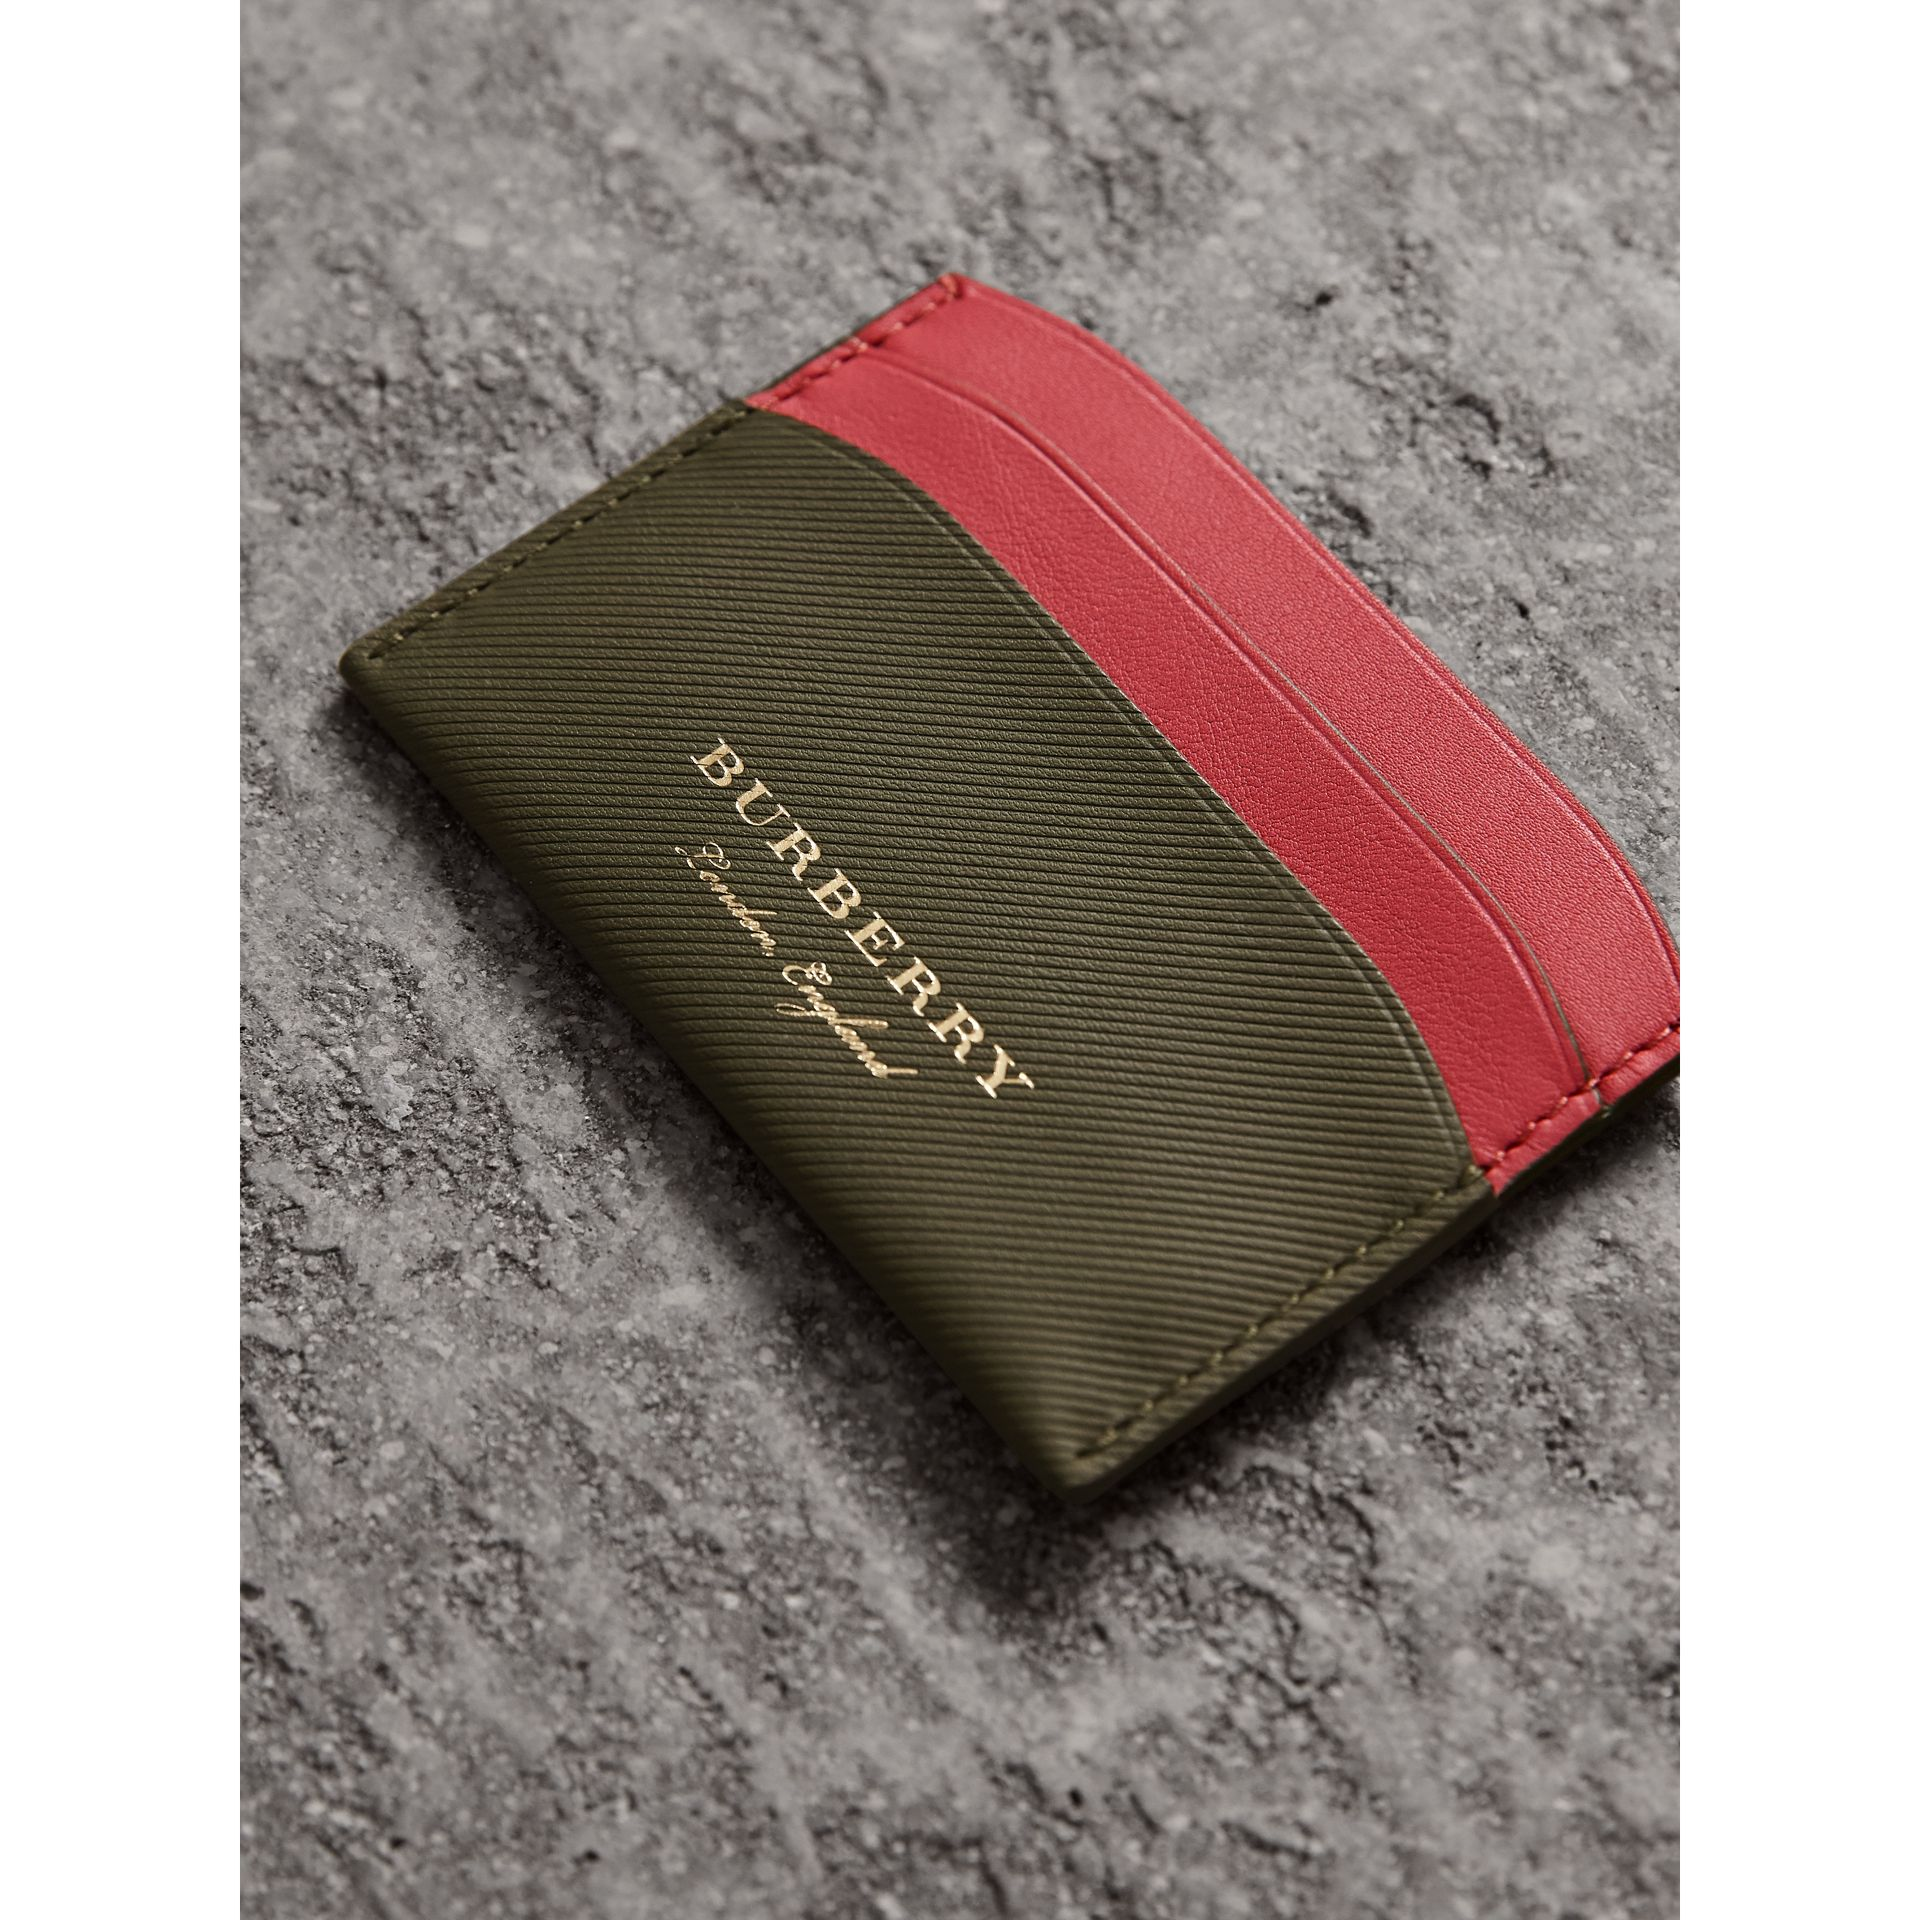 Two-tone Trench Leather Card Case in Mss Green/ Blsm Pink - Women | Burberry United States - gallery image 1